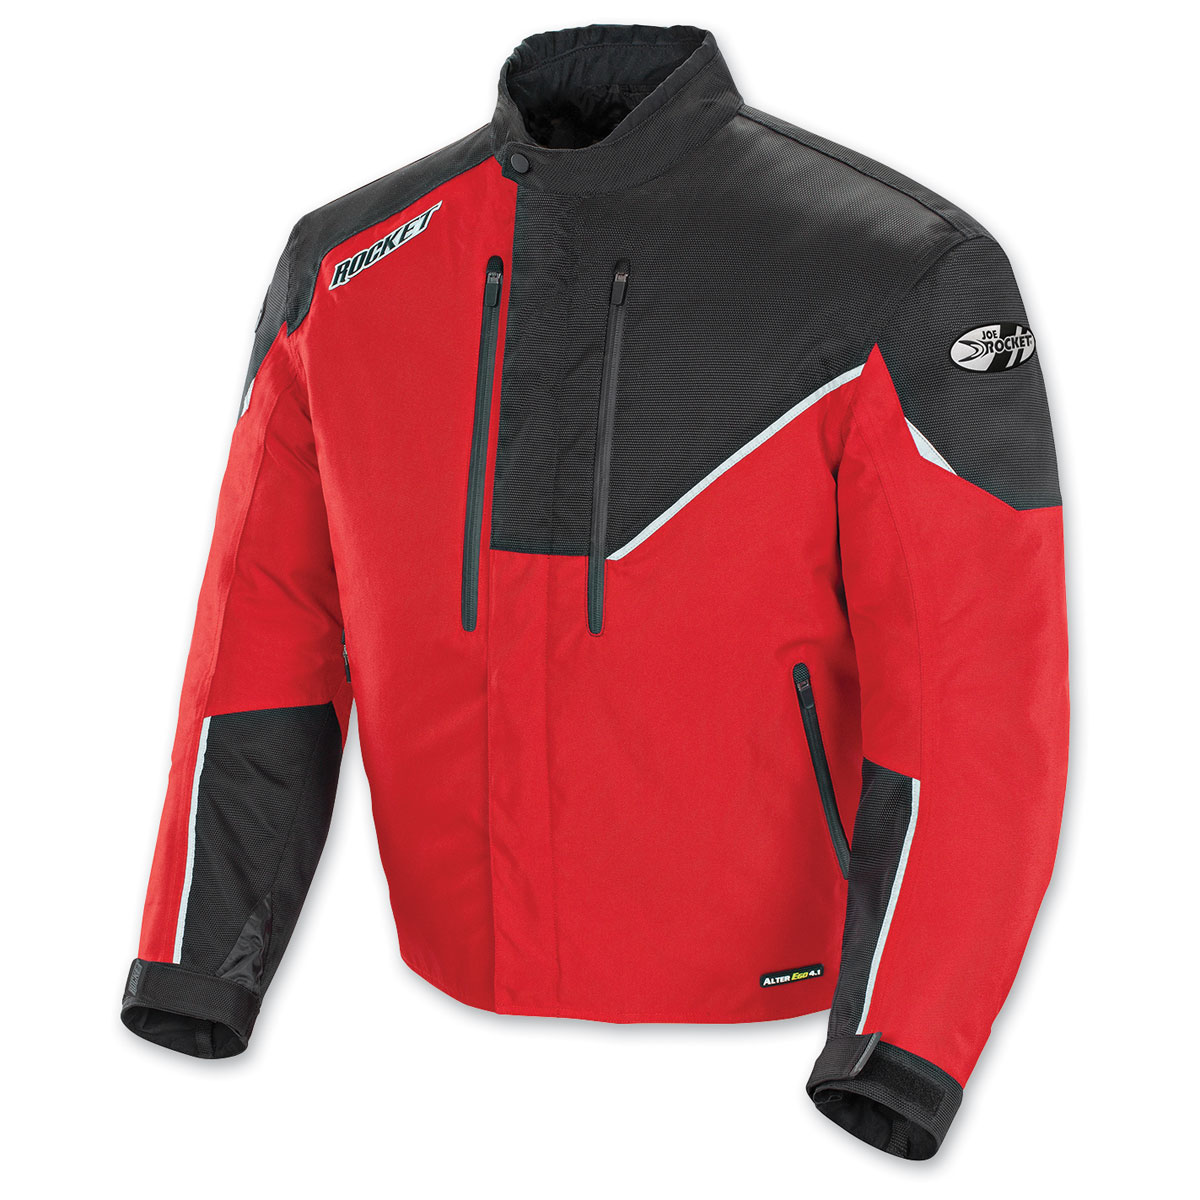 Joe Rocket Men's Alter Ego 4.1 Red/Black Jacket